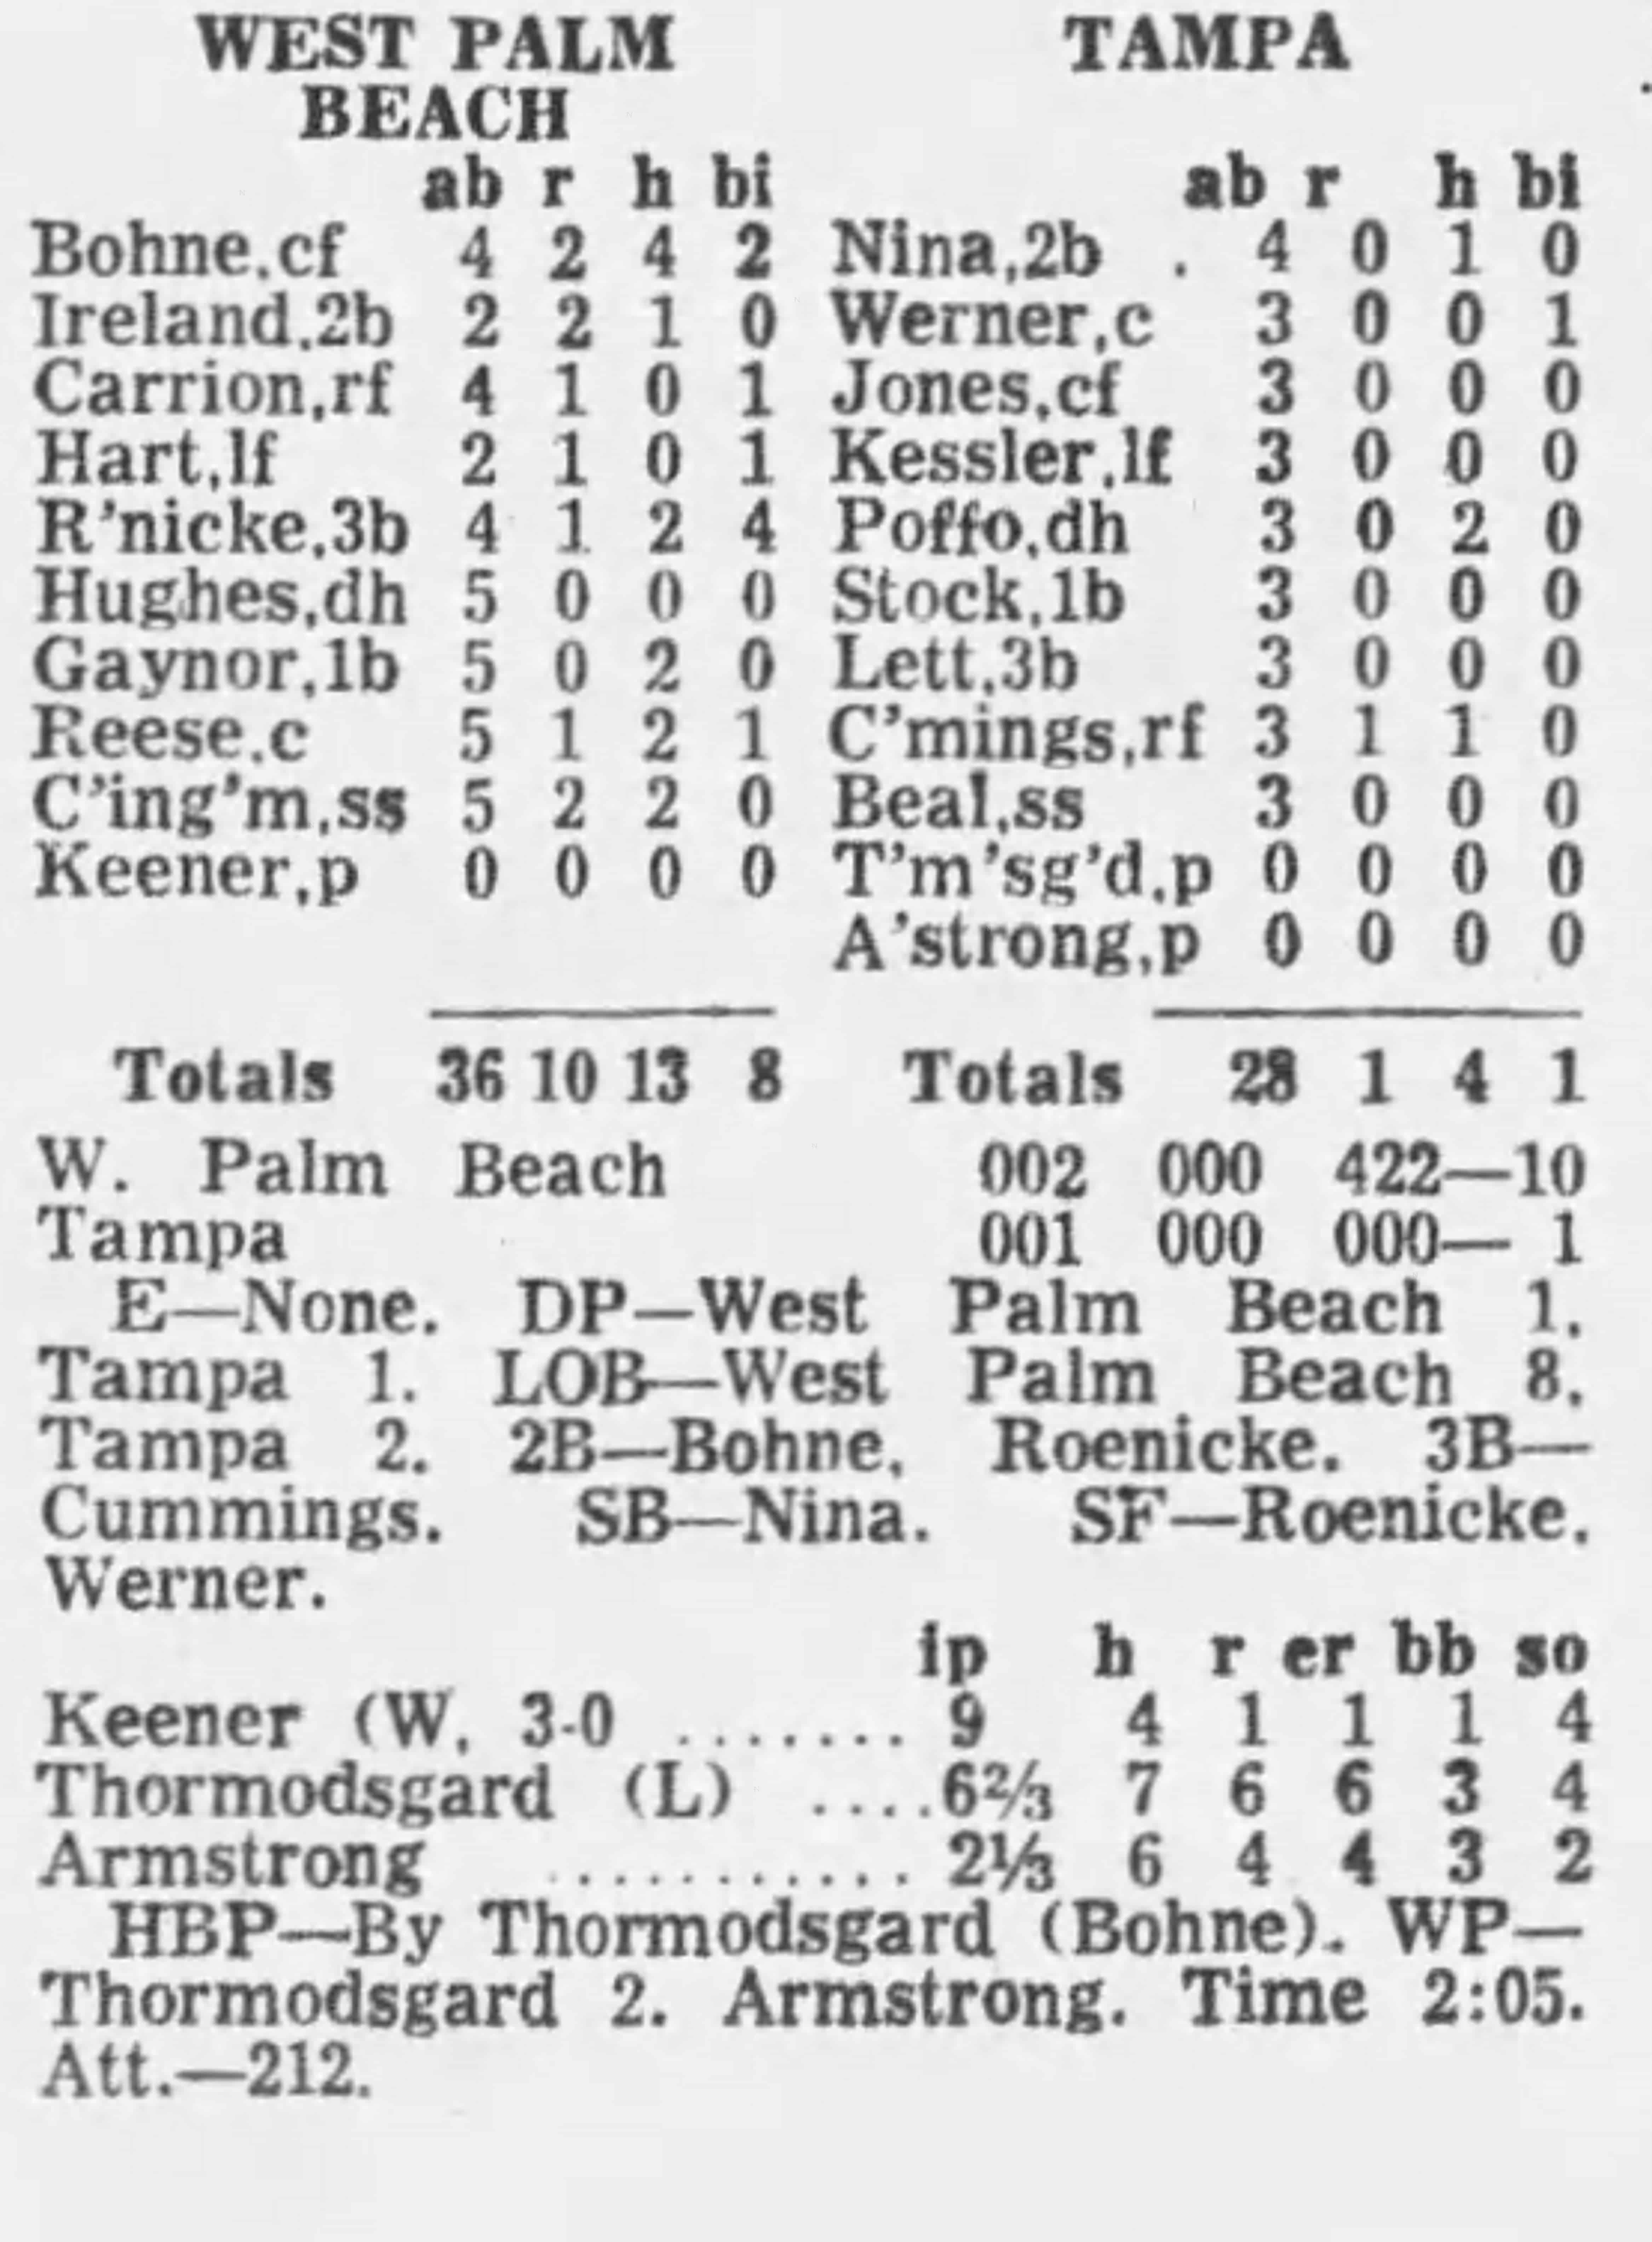 Box score from the very game Randy Poffo attacked the pitcher after getting beamed in the helmet while waiting in the on-deck circle [Tuesday, April 30, 1974 edition of The Tampa Tribune]